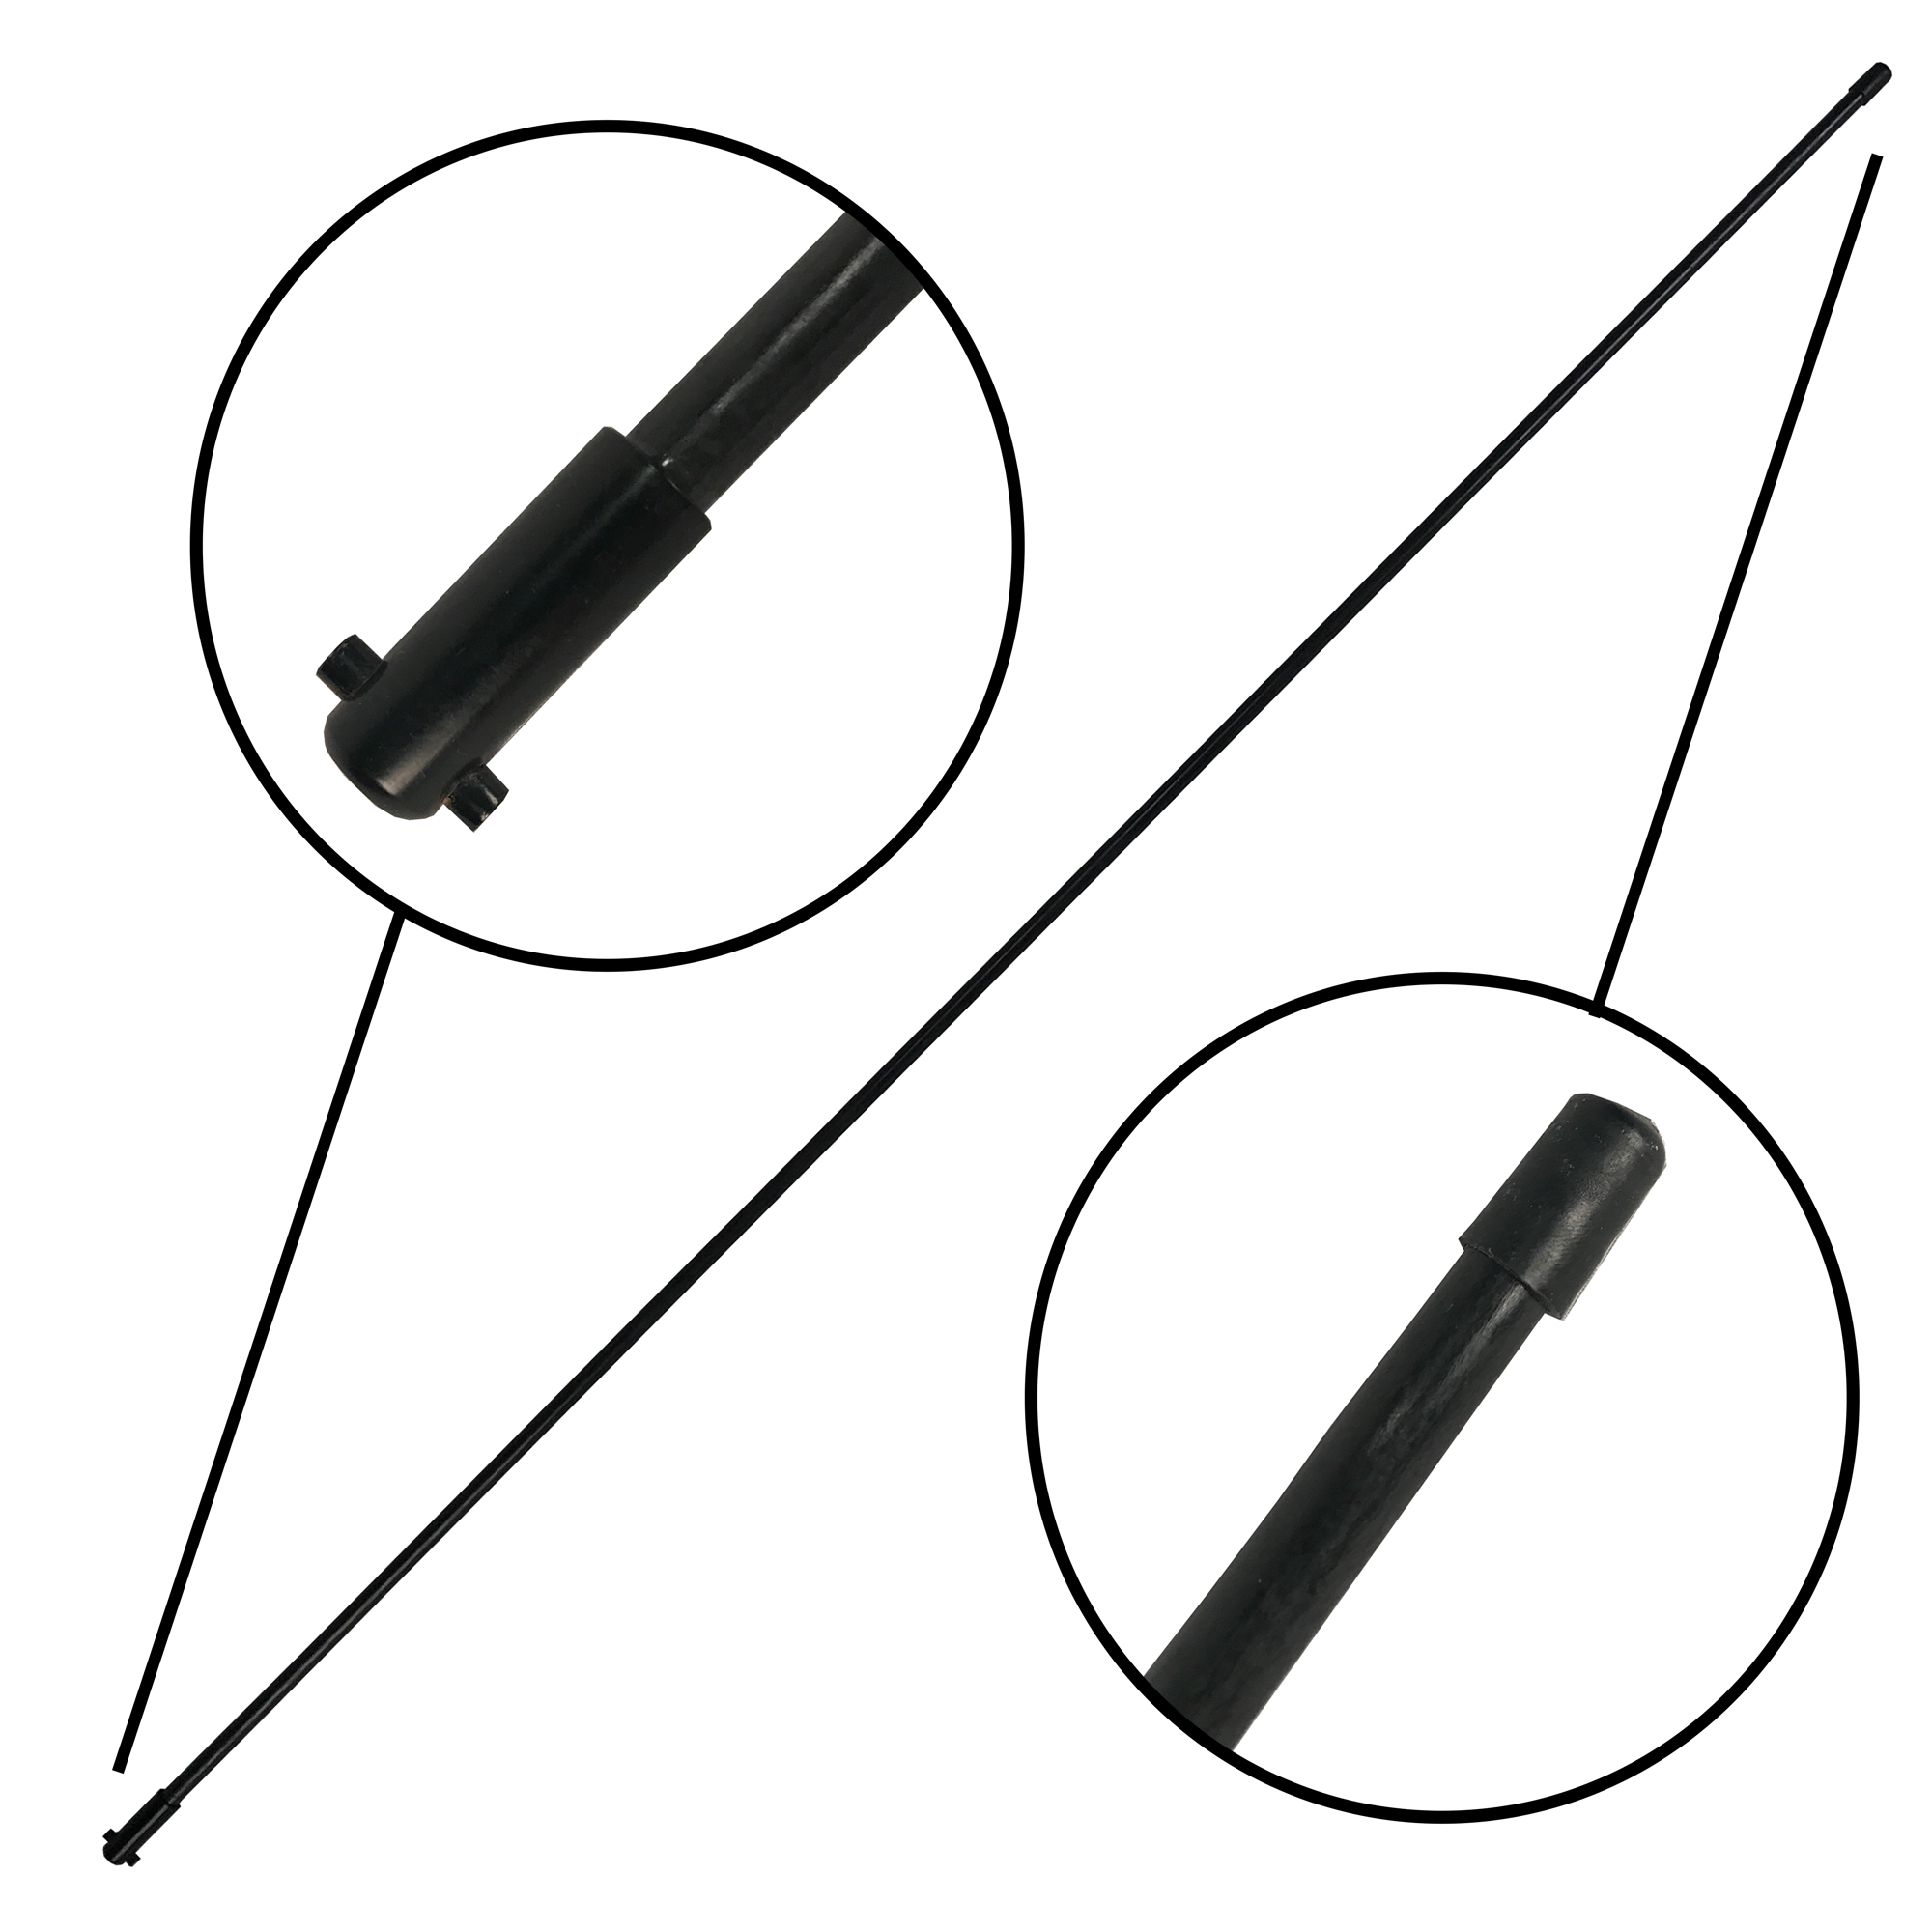 Replacement Rod - 4 Pack